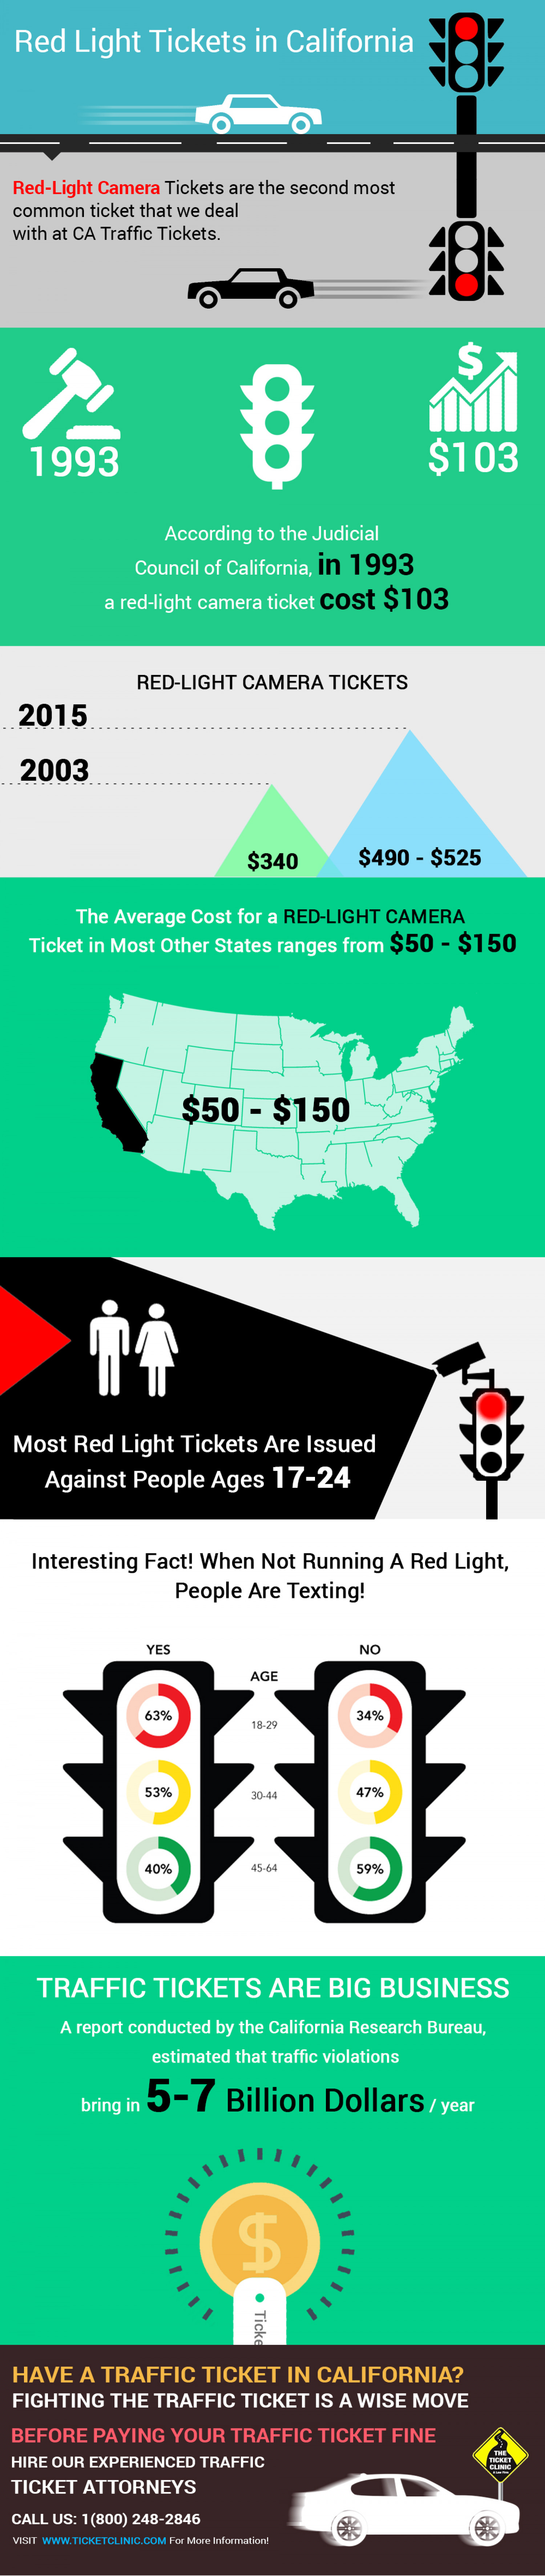 Red Light Ticket California Infographic